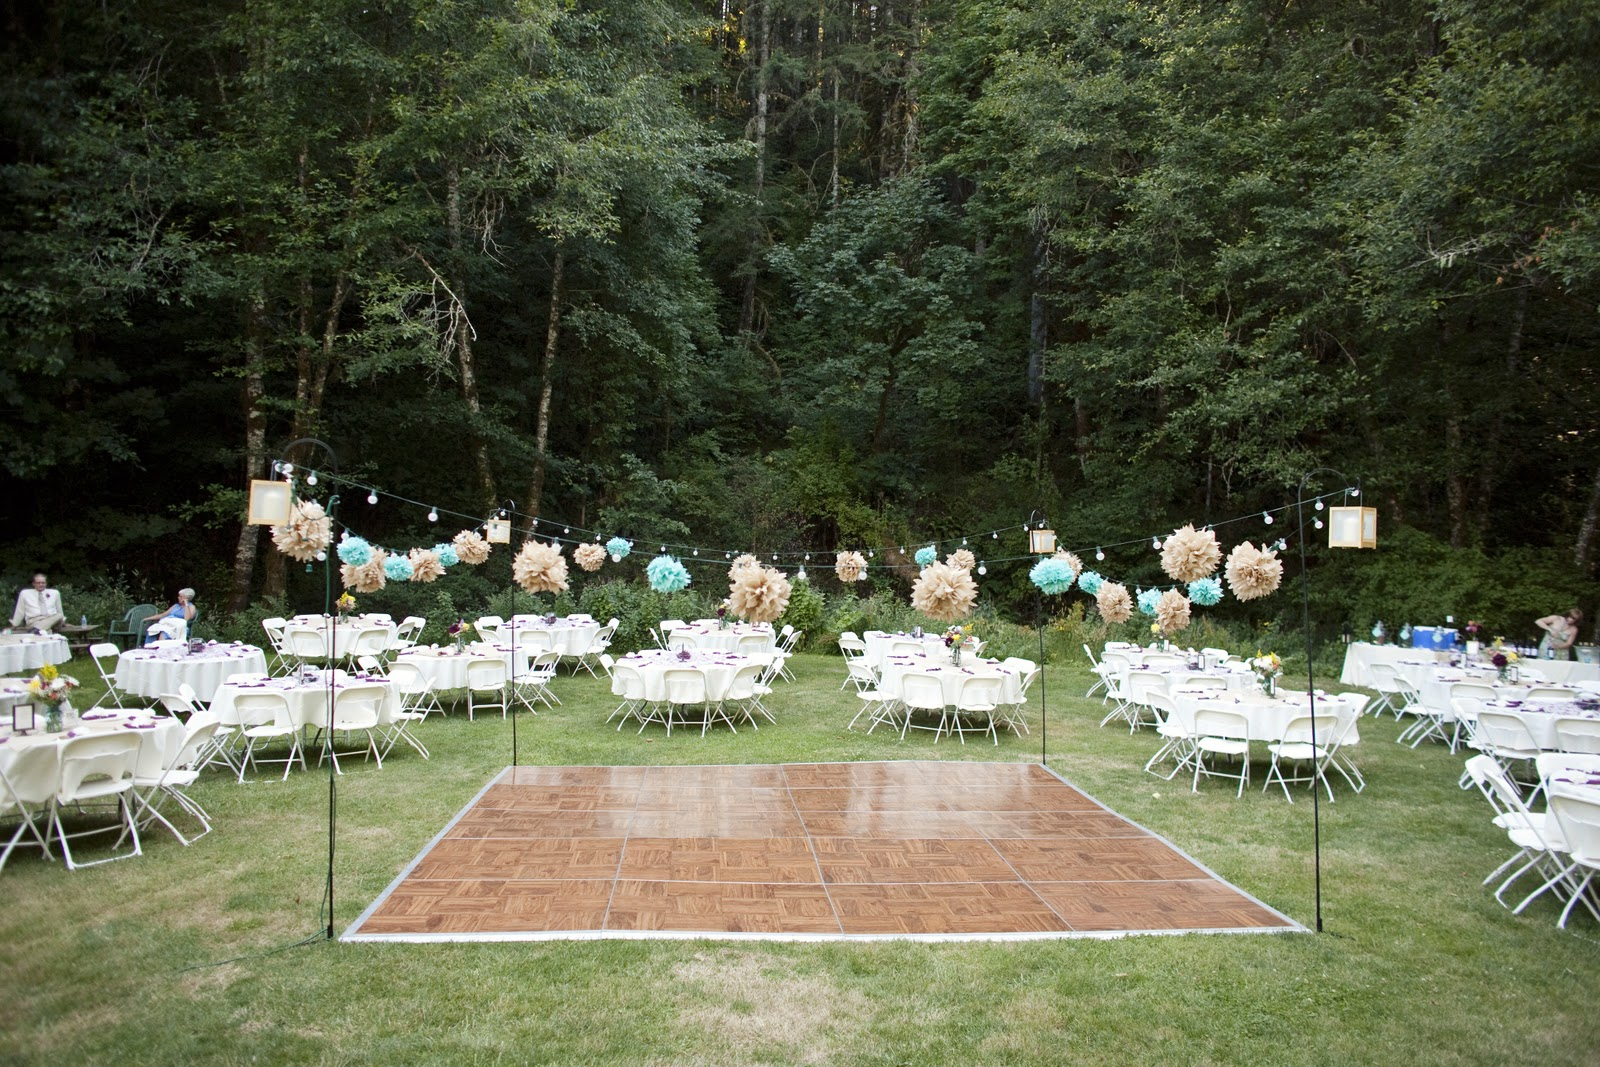 Outdoor wedding dance floor ideas Outdoor Wedding Dance Floor Ideas